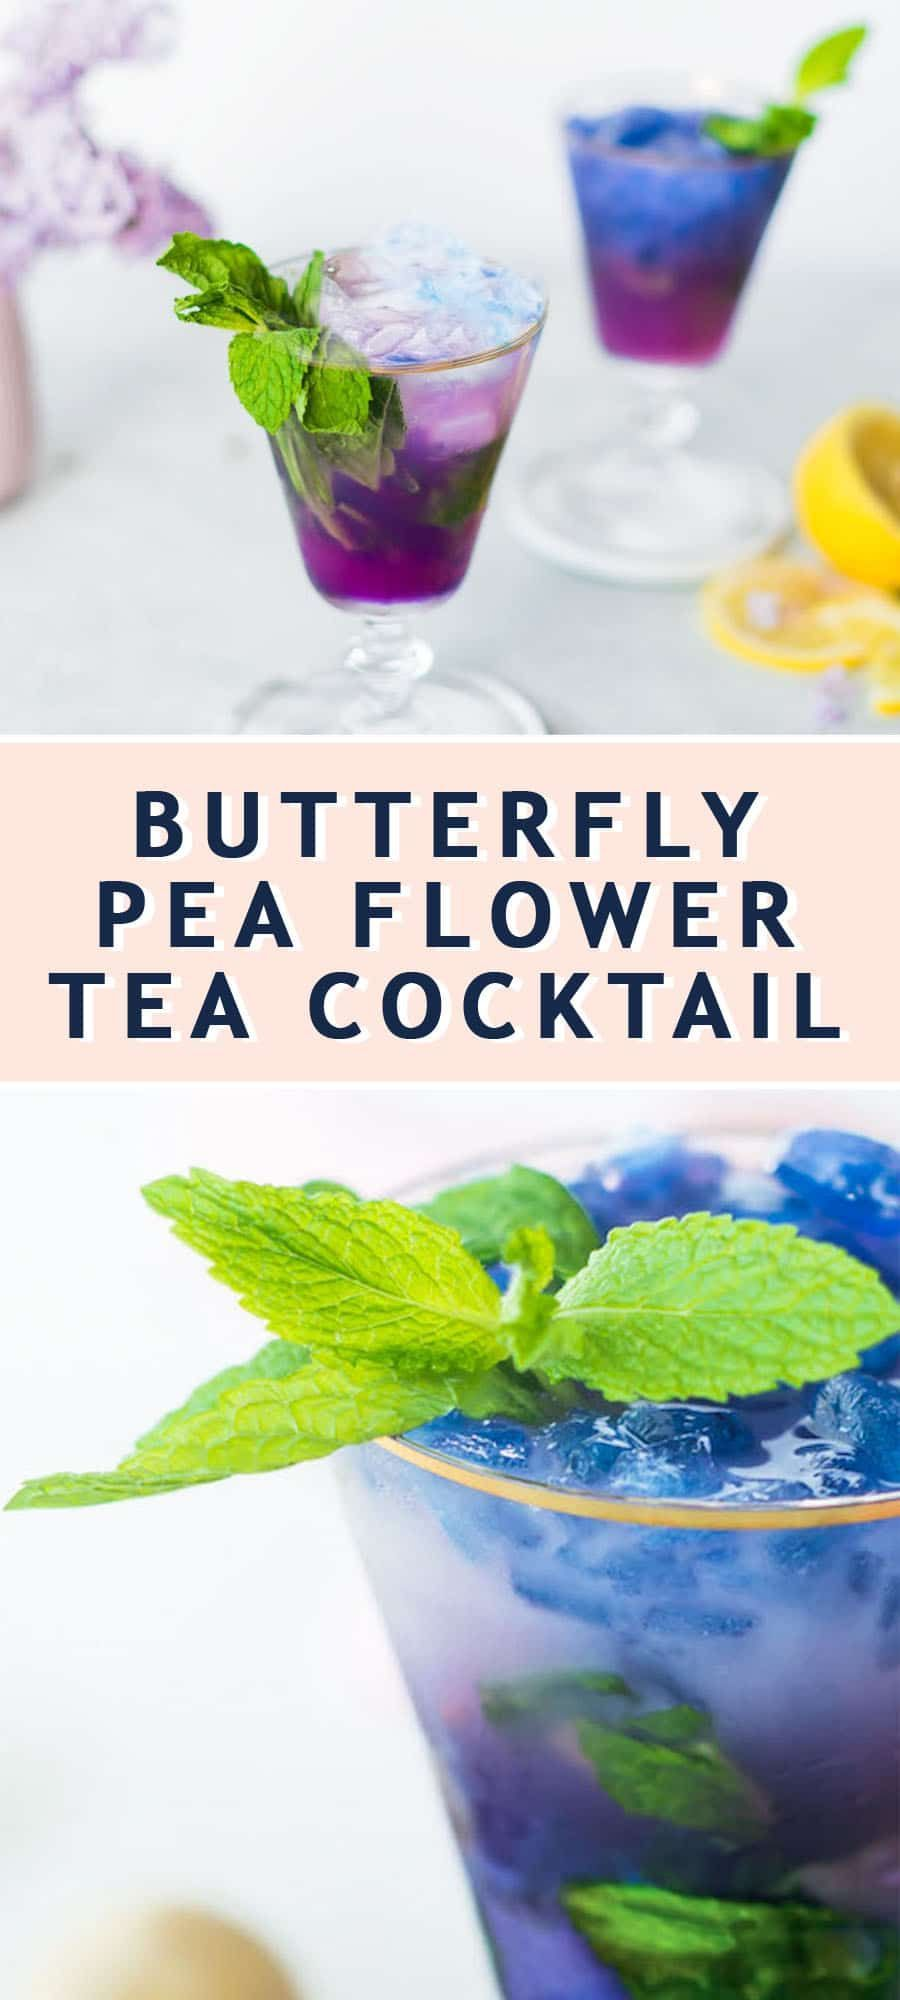 How To Make A Butterfly Pea Flower Tea Cocktail Recipe